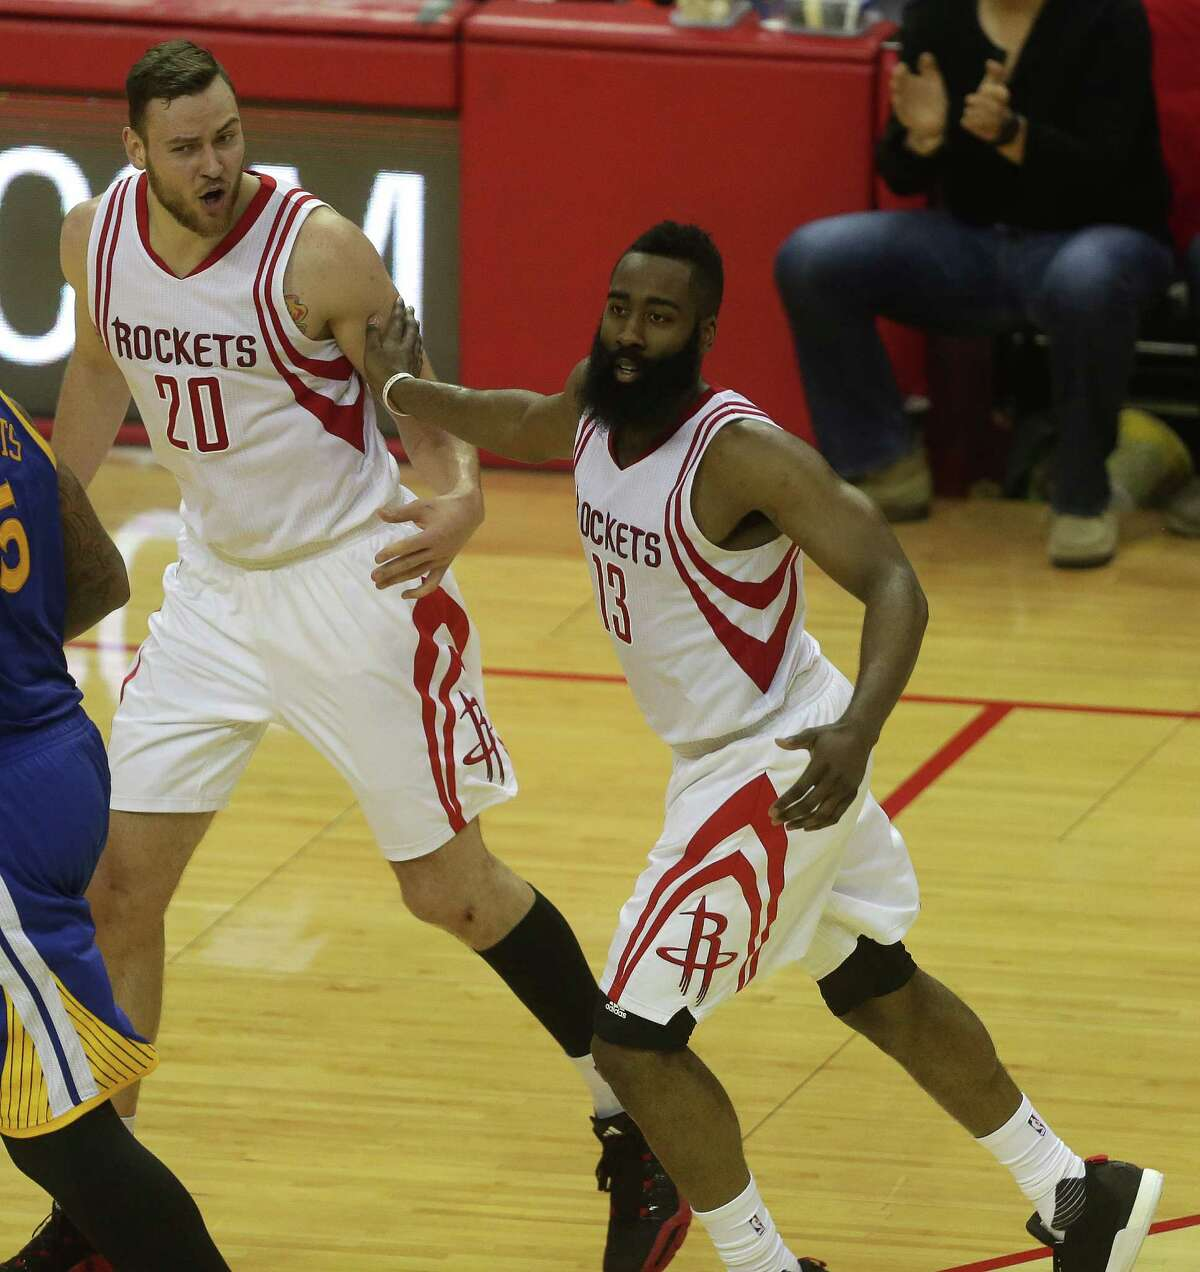 Houston Rockets guard James Harden (13) reacts after his basket with Donatas Motiejunas (20) during the second half in game three of a first-round NBA playoffs series at Toyota Center, Thursday, April 21, 2016, in Houston.